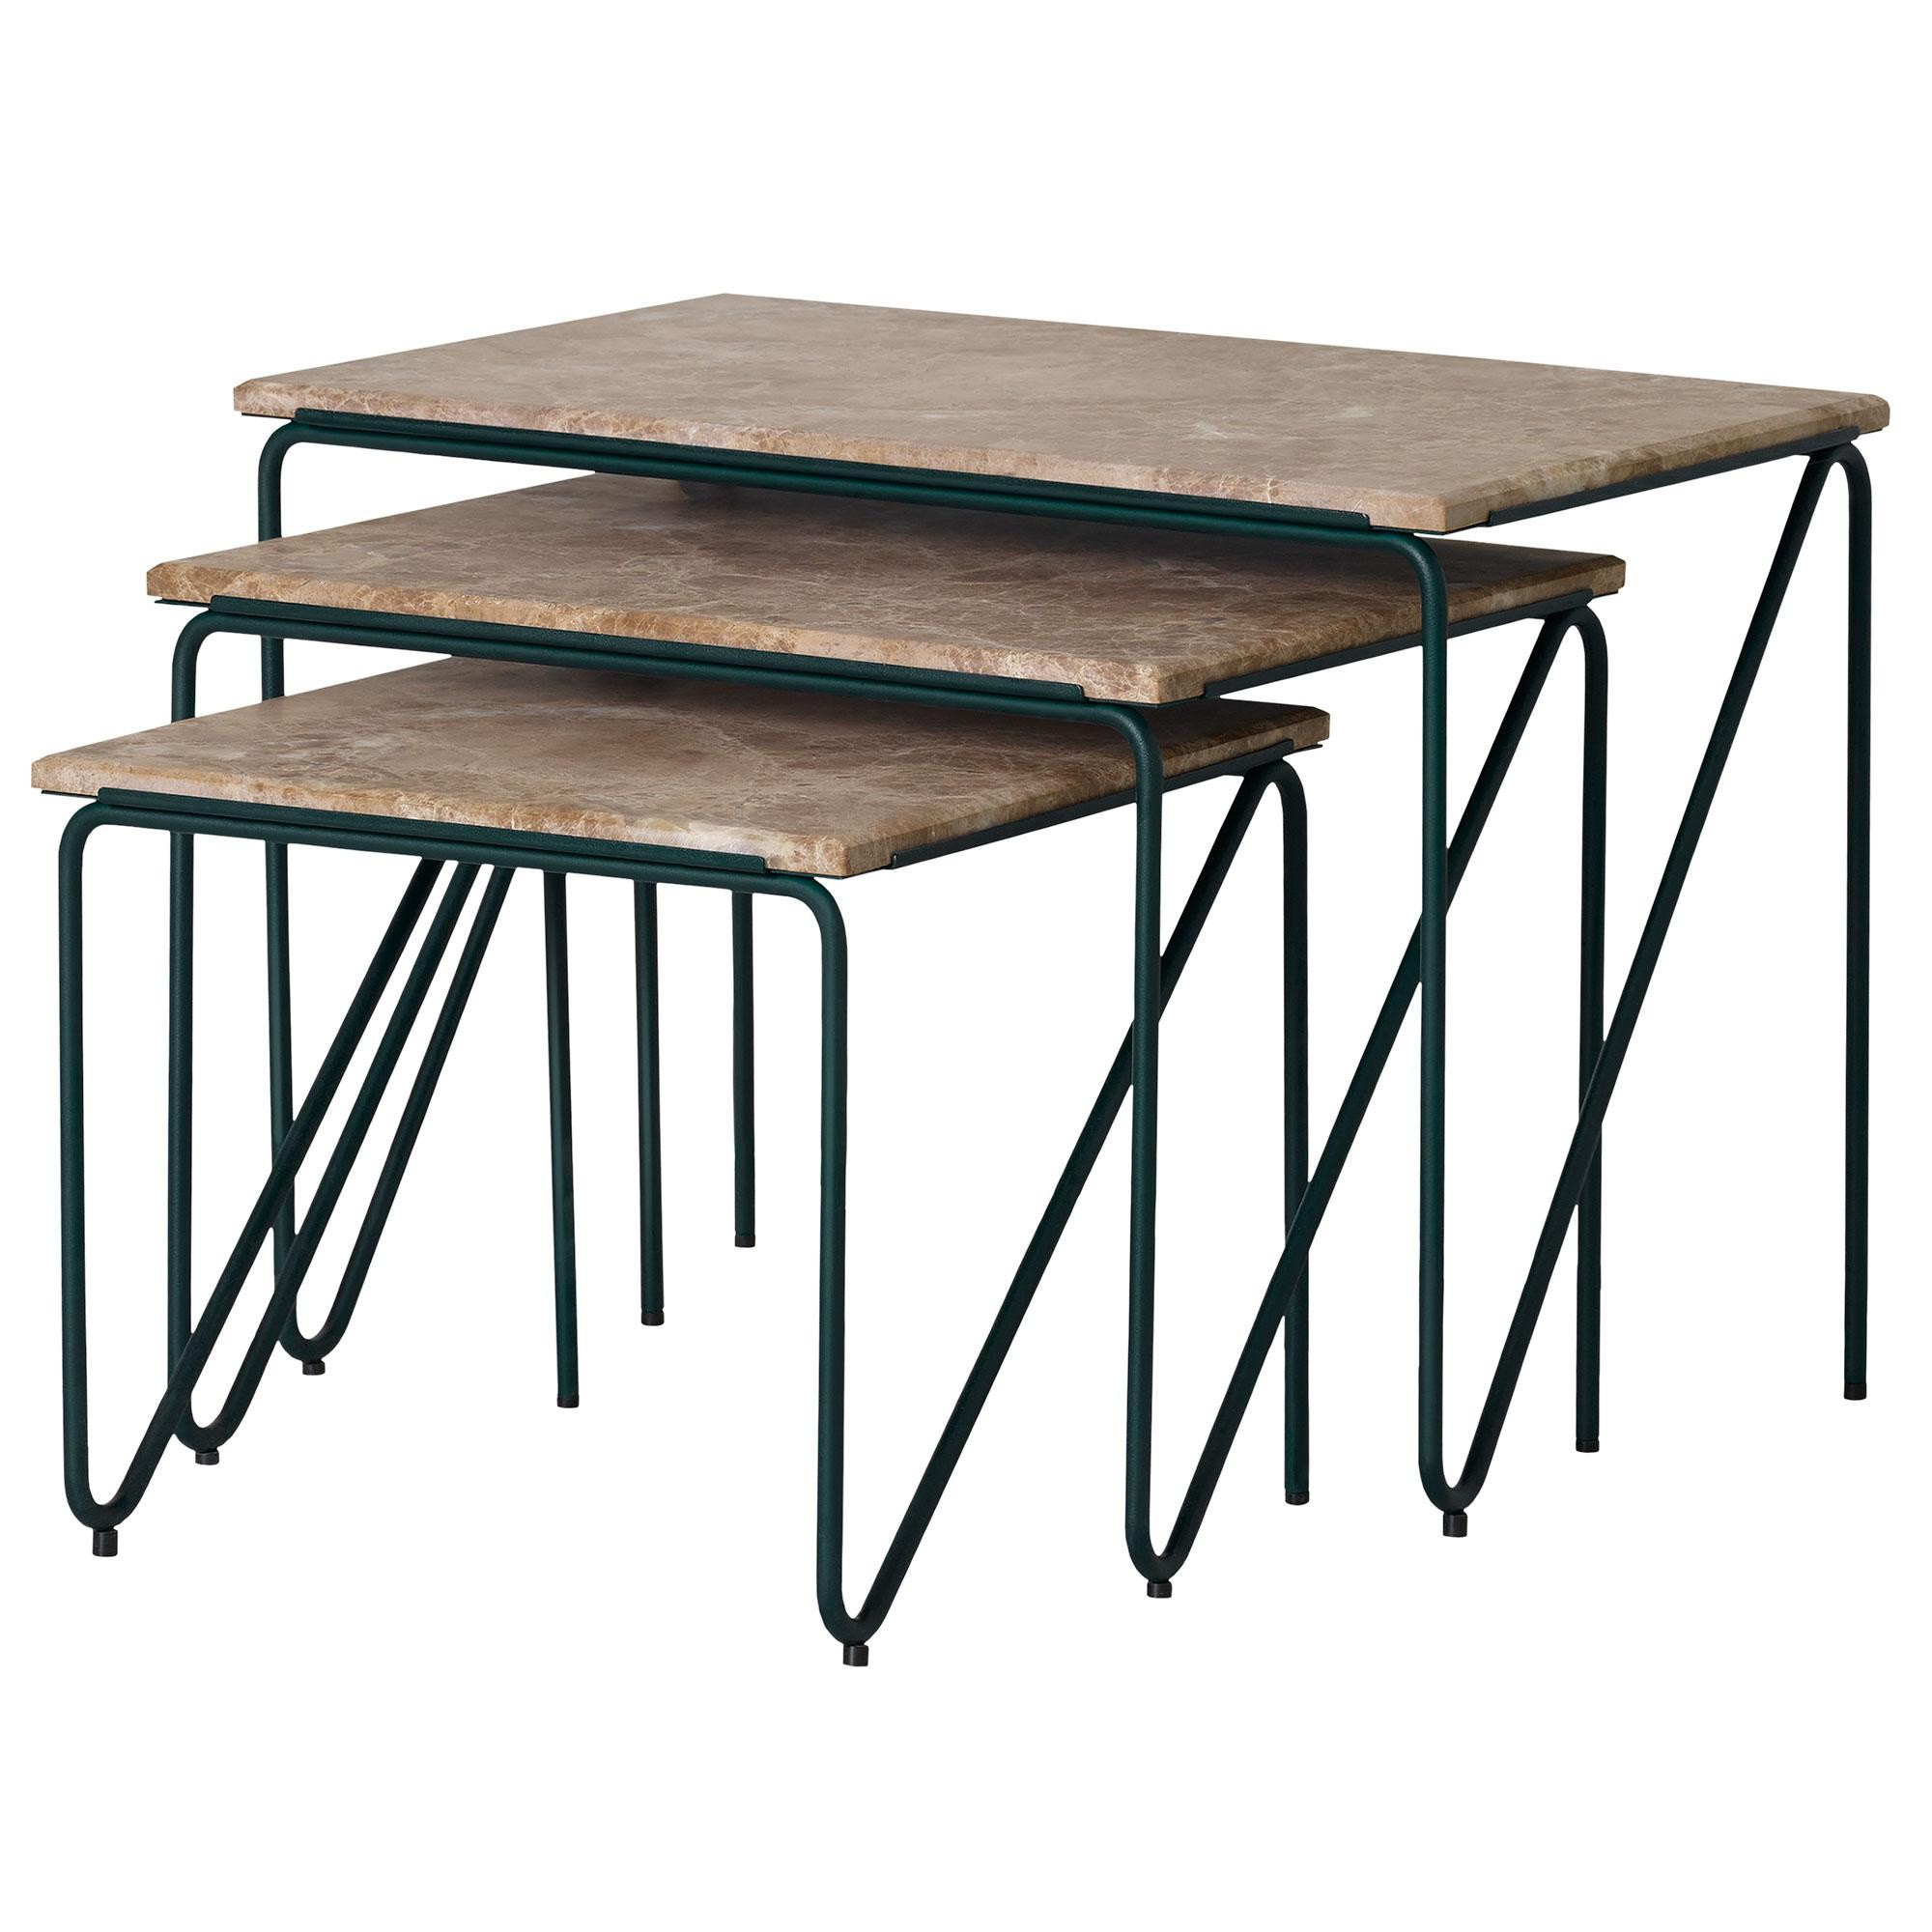 PLEASE WAIT to be SEATED Triptych Nesting Tables Beistelltisch 3er